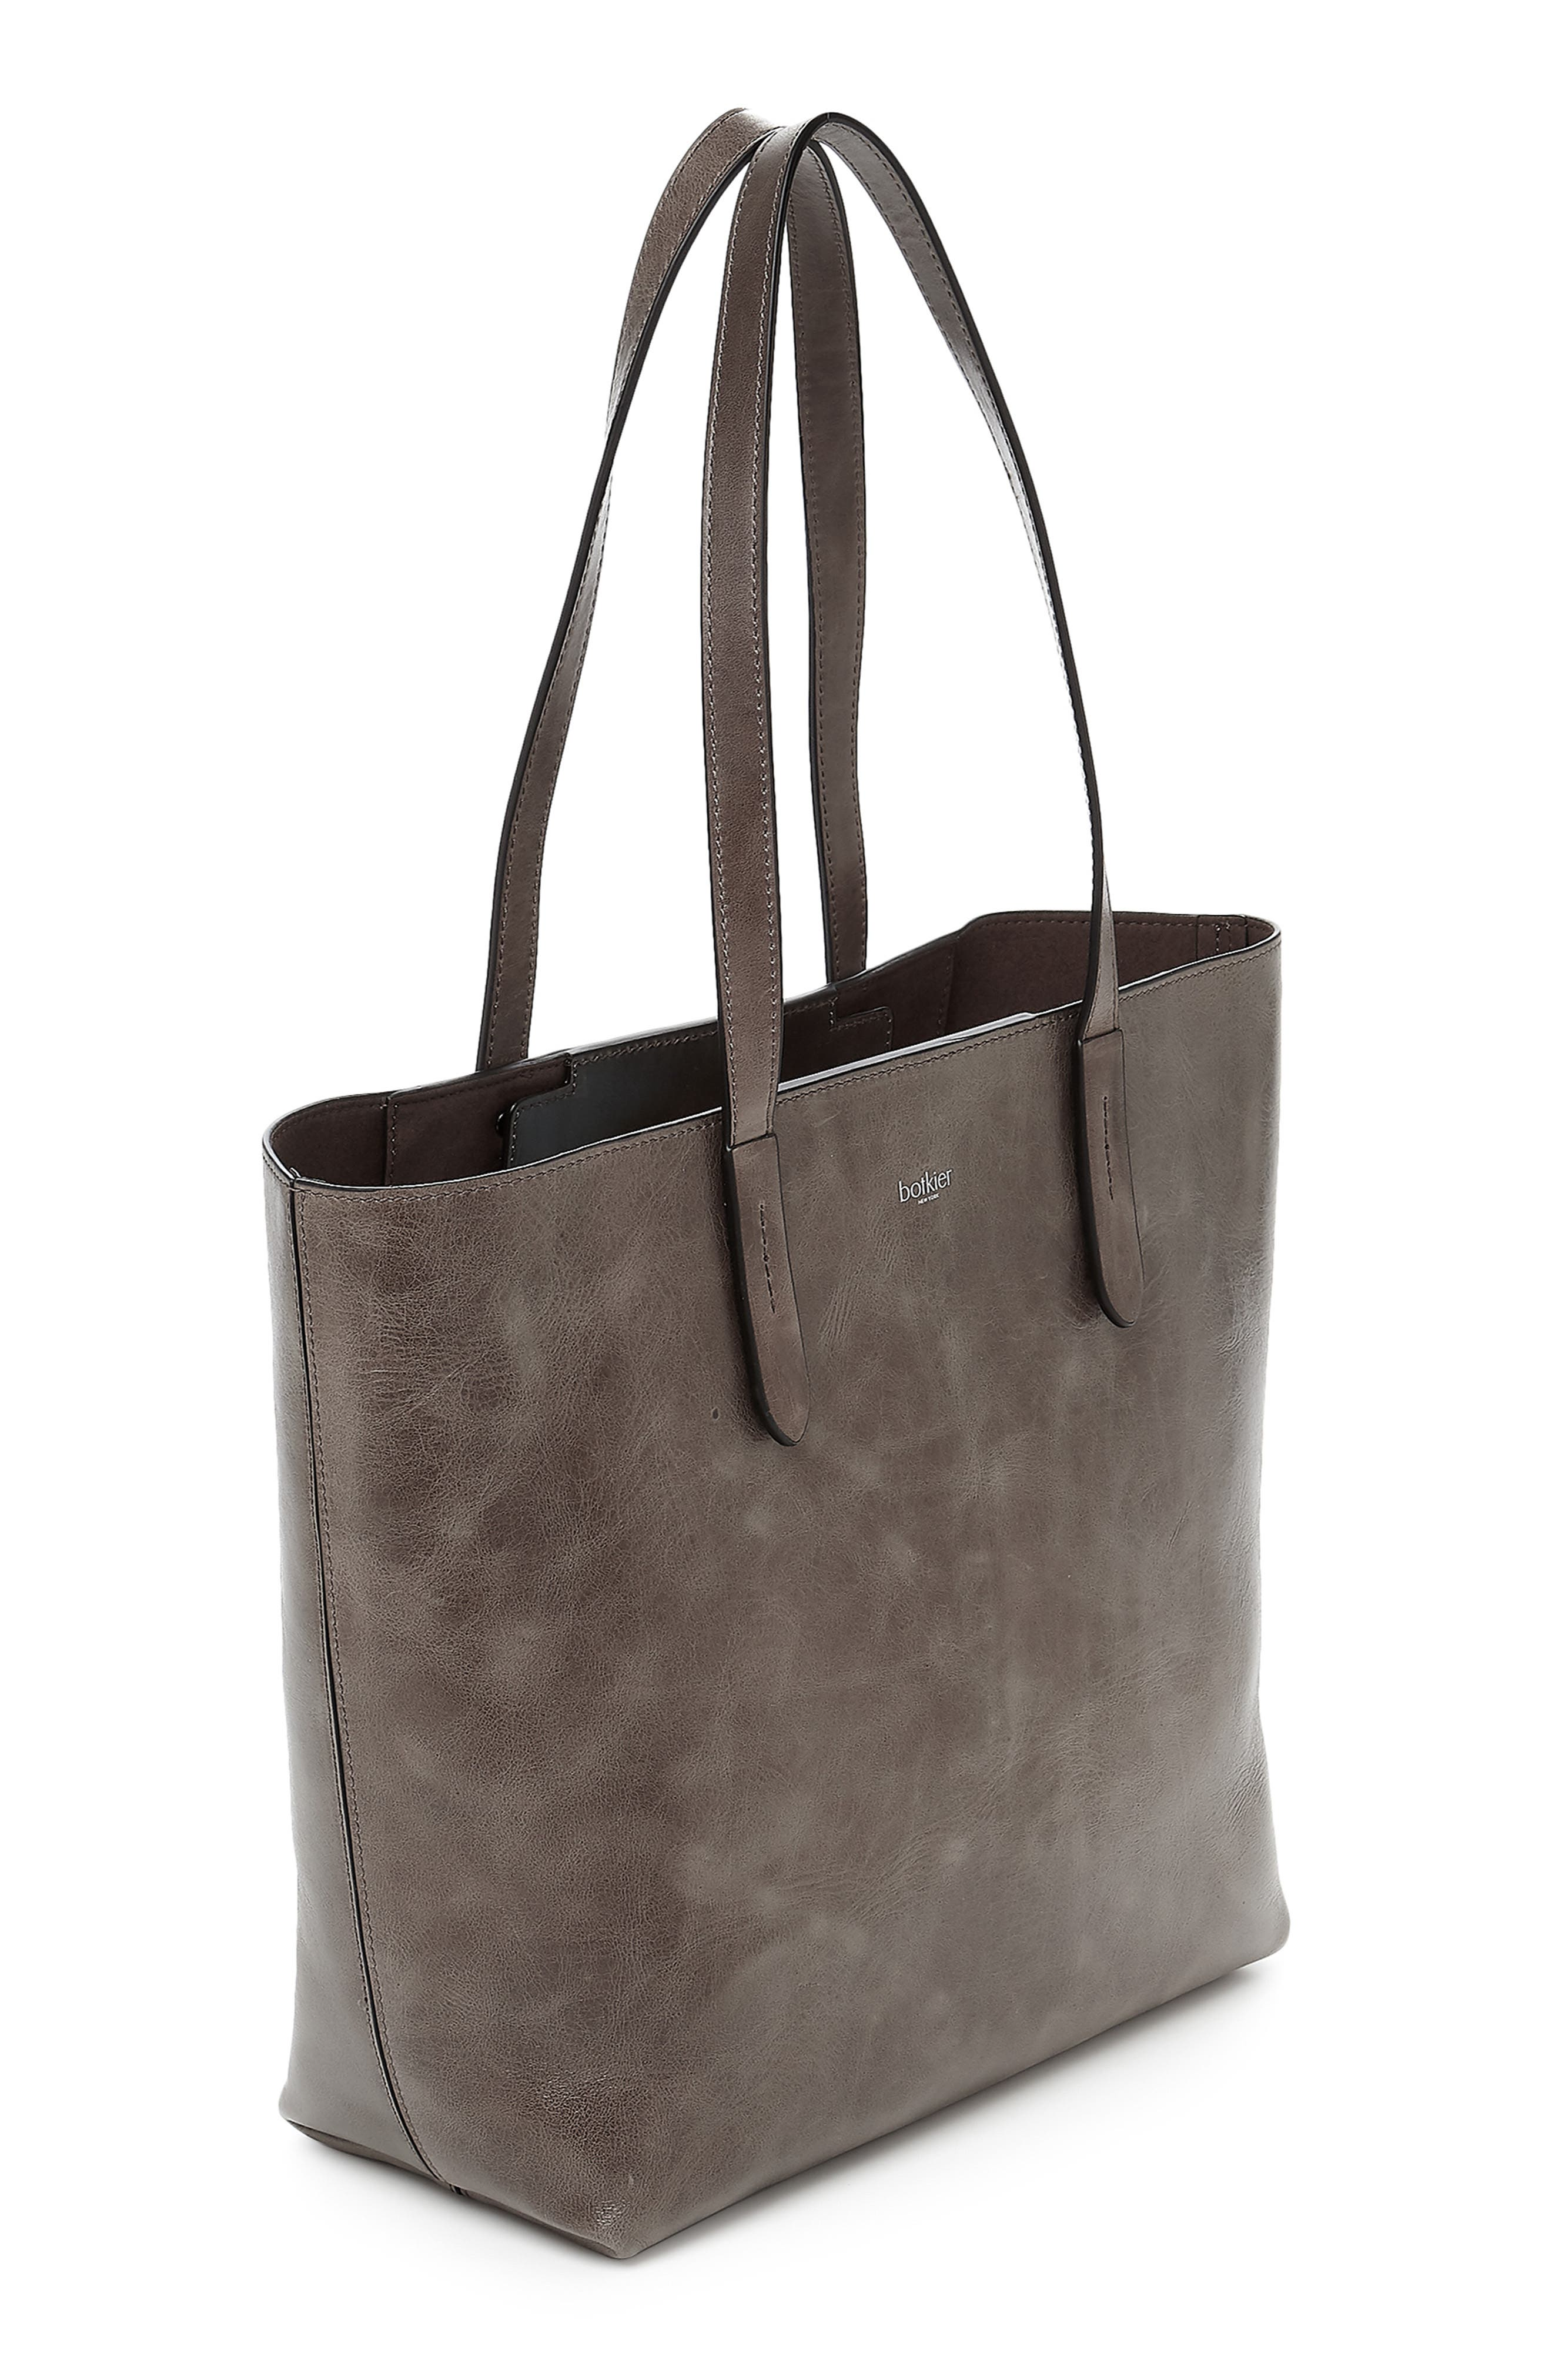 BOTKIER, Highline Leather Tote, Alternate thumbnail 4, color, WINTER GREY